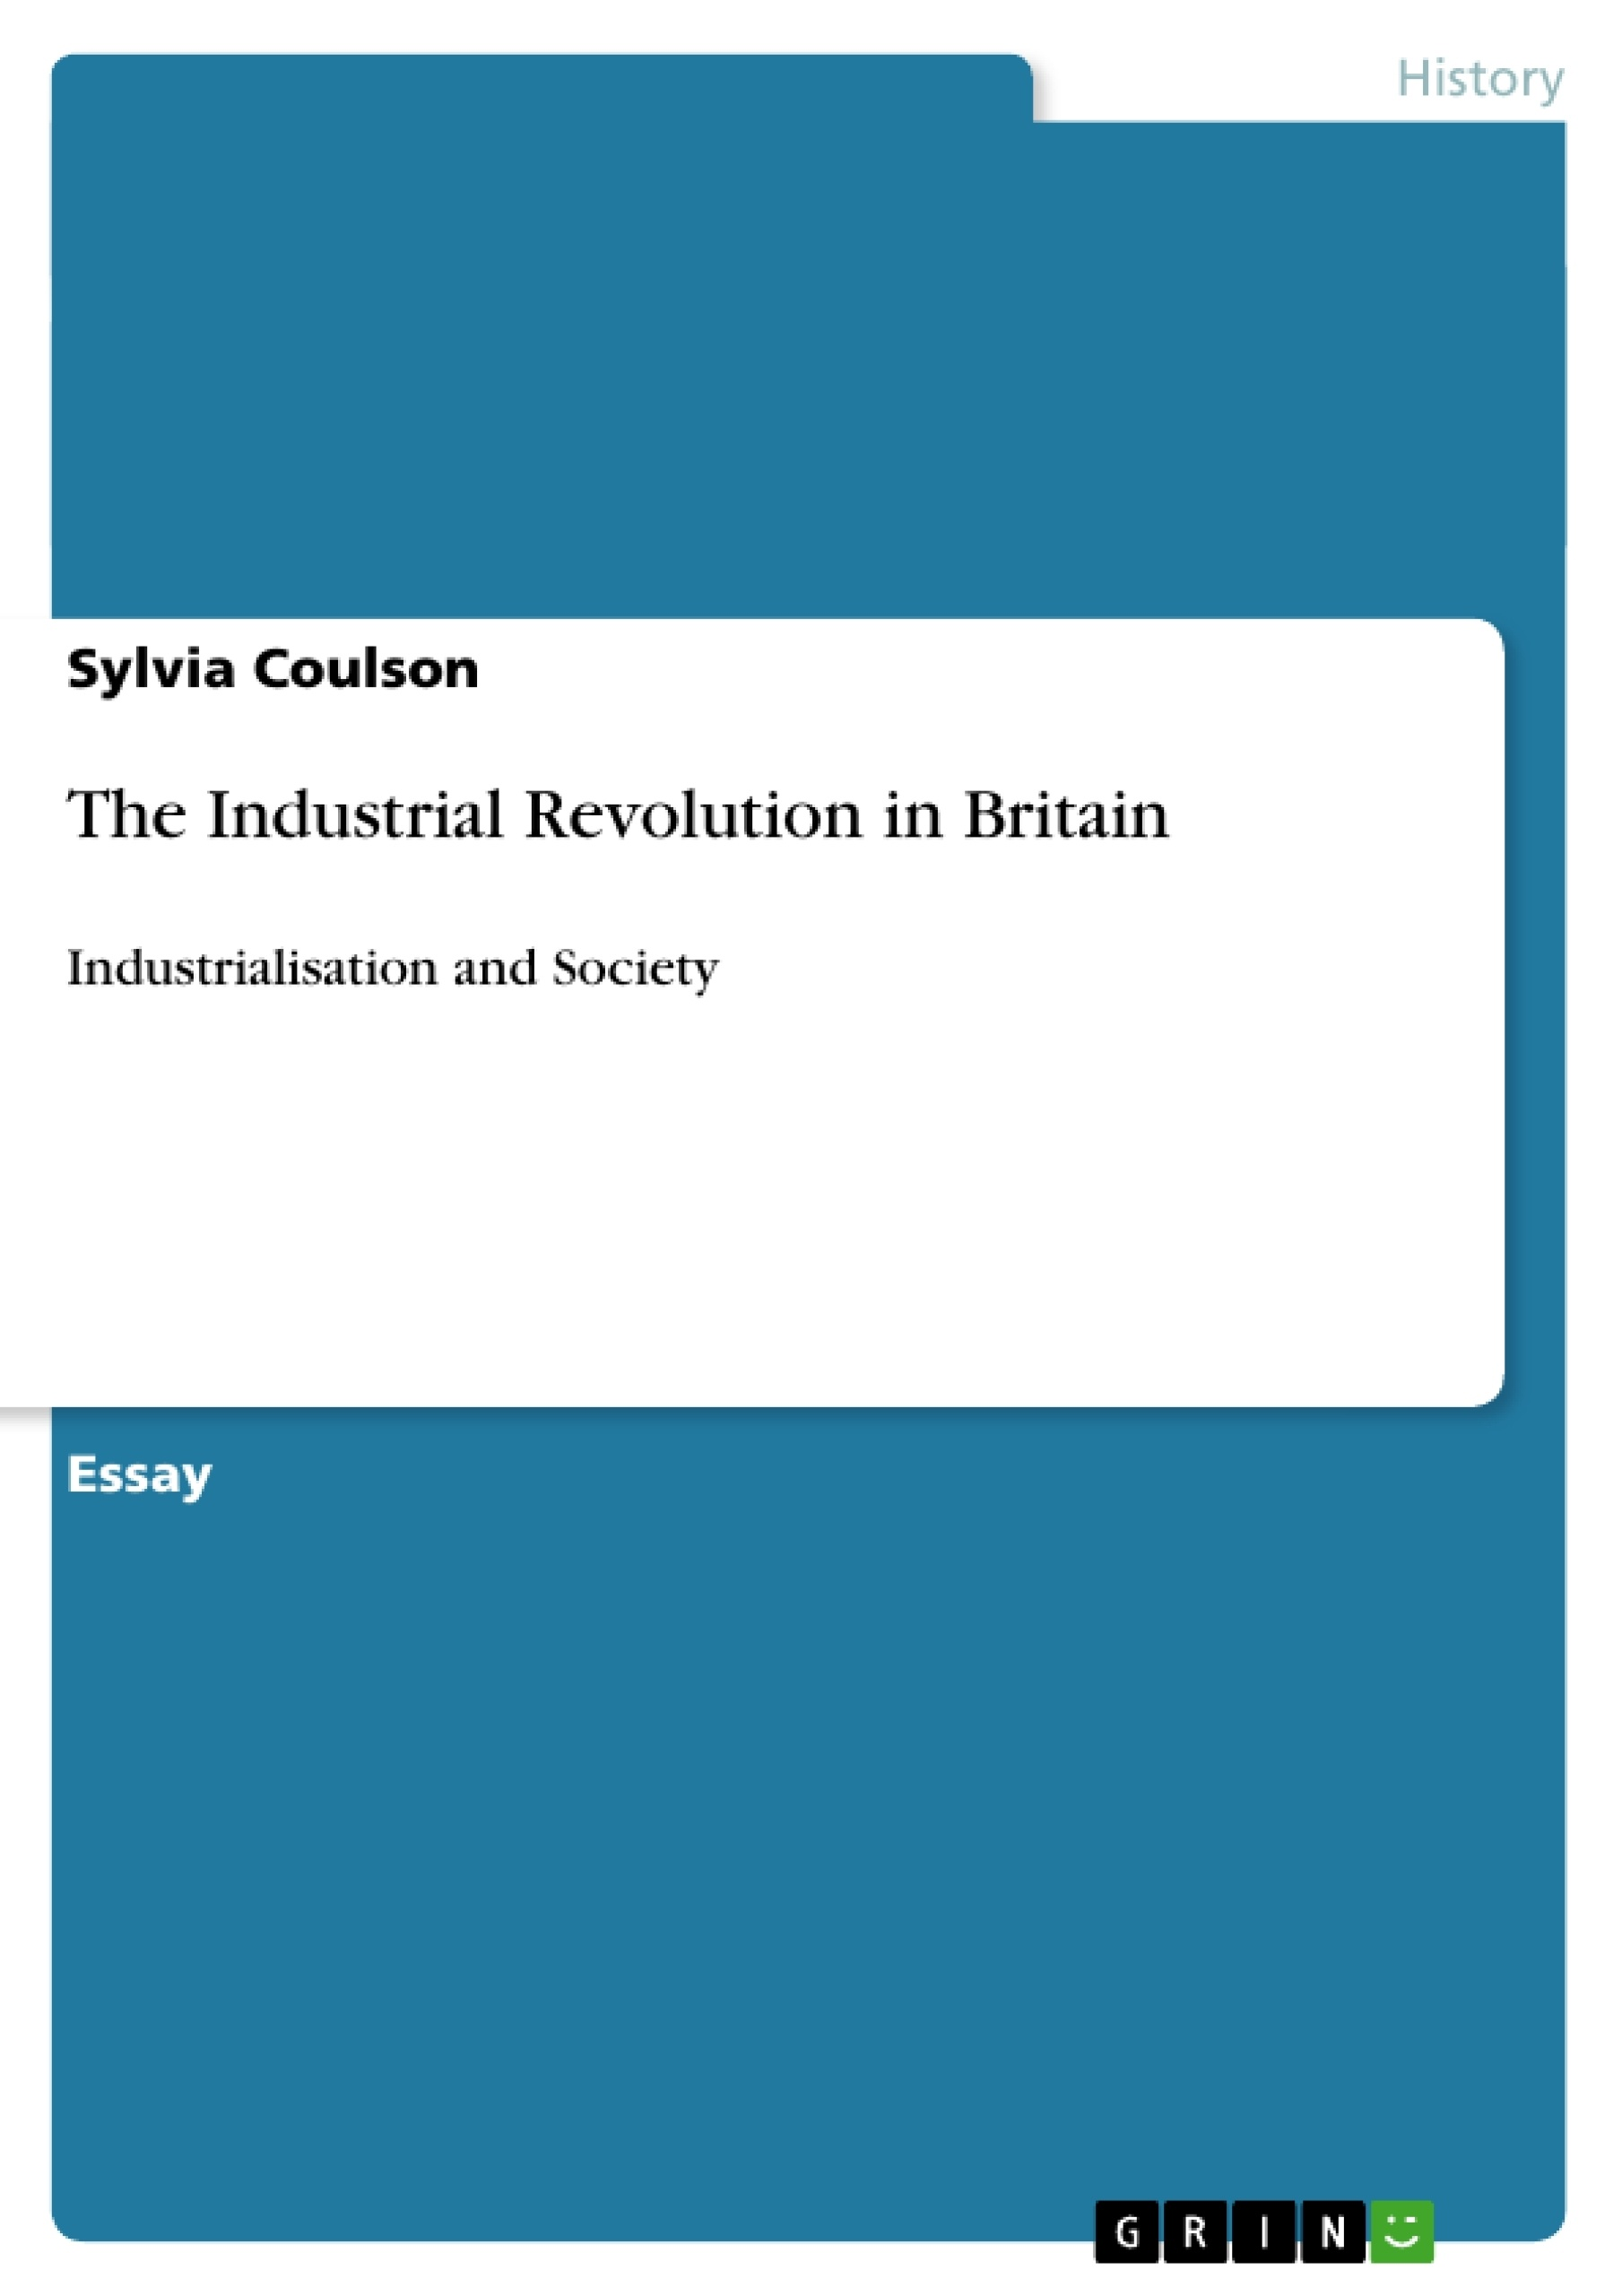 Title: The Industrial Revolution in Britain